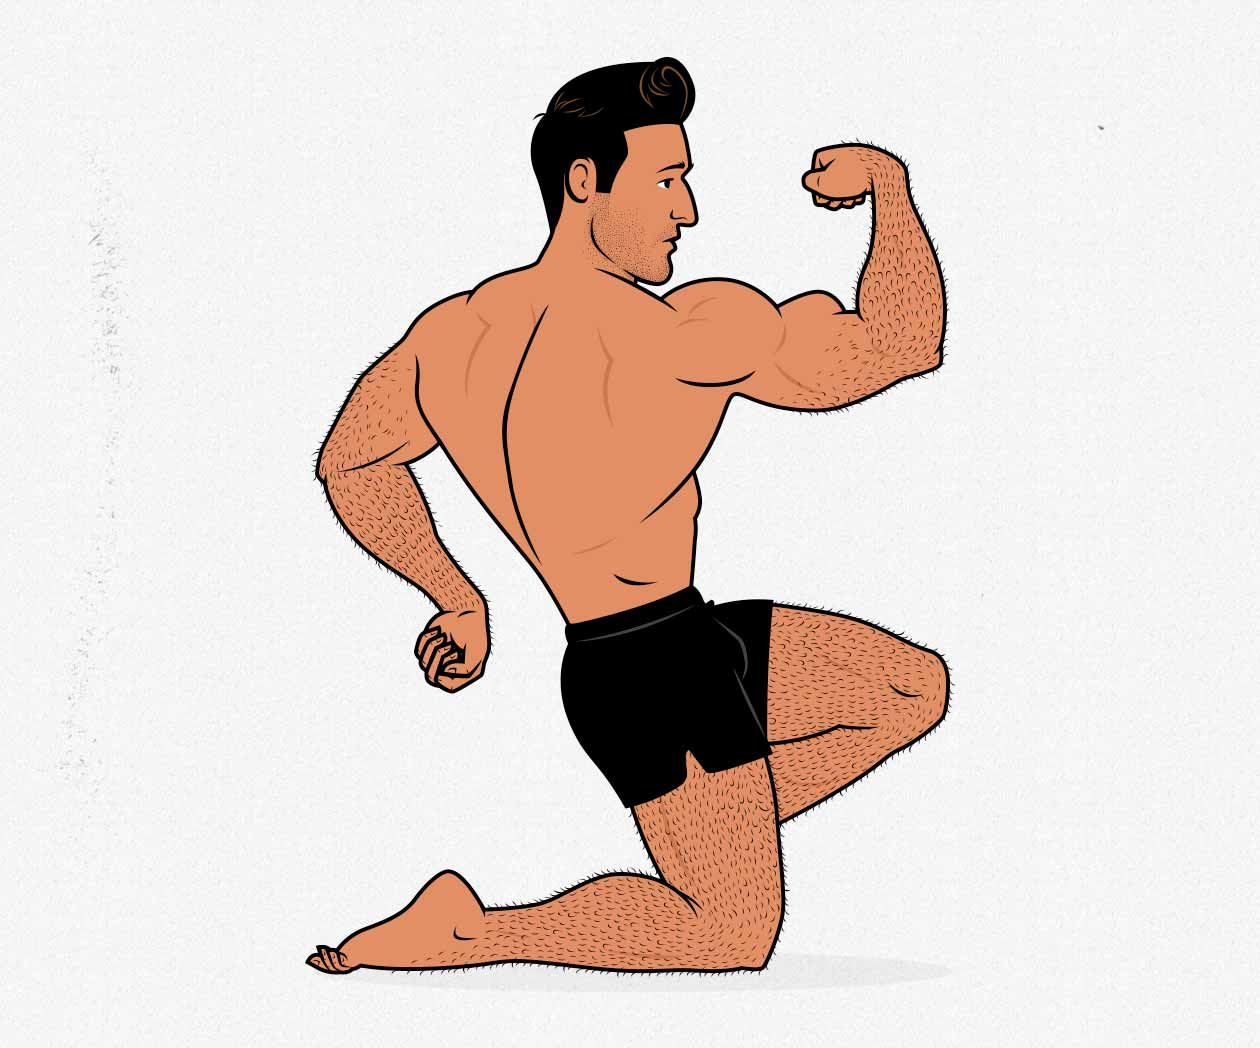 Illustration of a bodybuilder flexing his biceps (and other muscles).